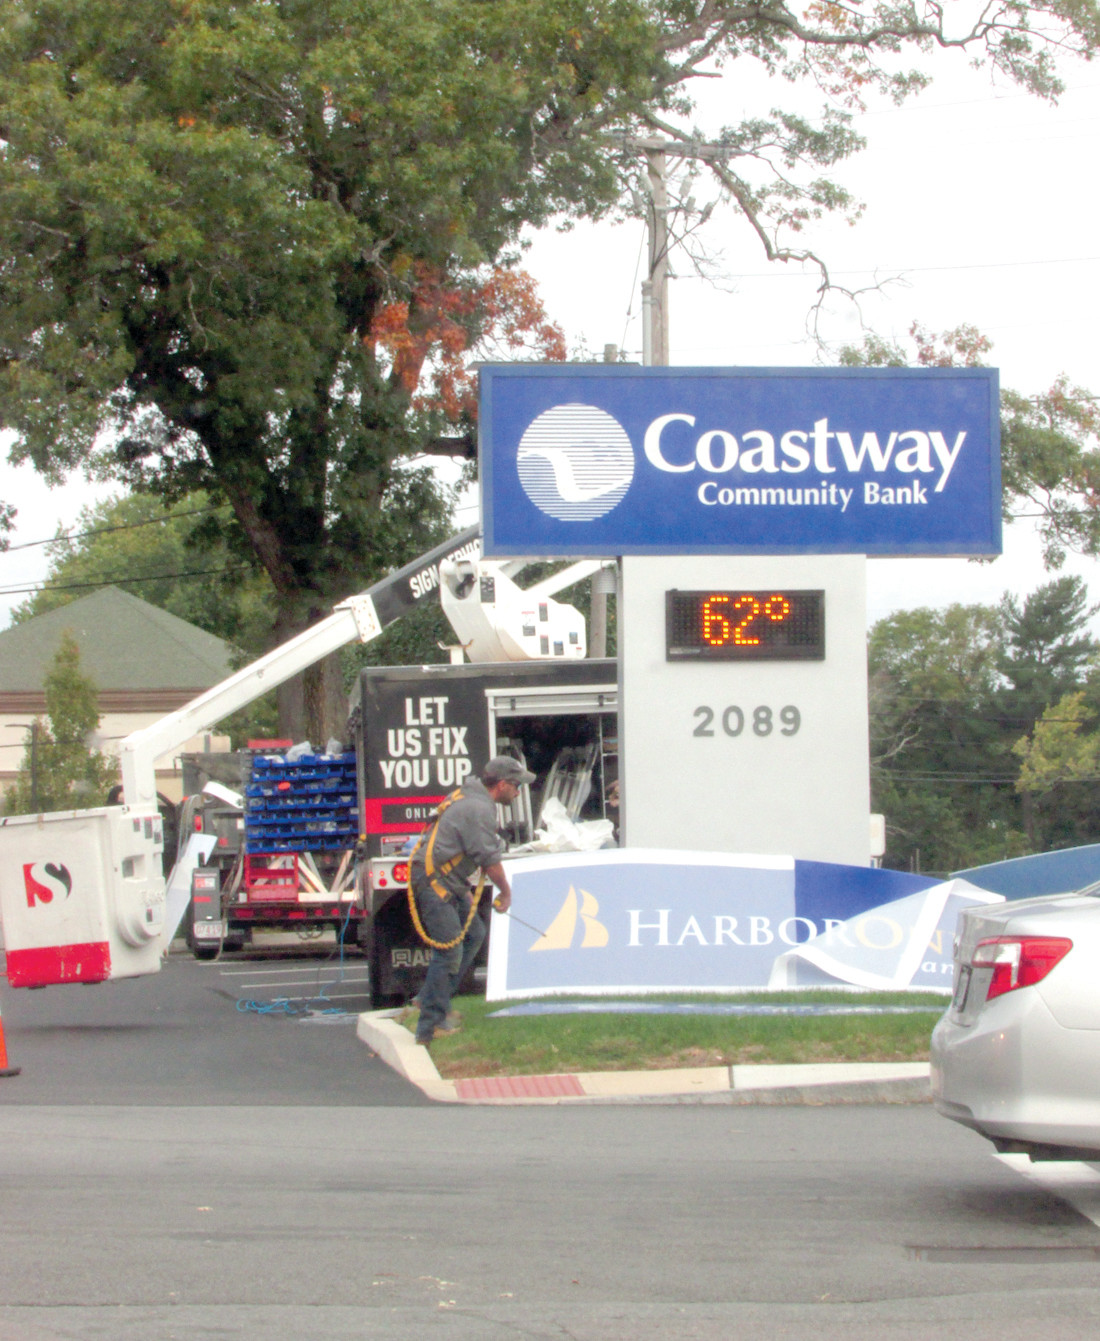 A LOT OF CHANGES: The Coastway Community Bank signs came down at branches across the state over the weekend as the HarborOne deal to buy the bank was finalized. While the name, debit cards and online banking changes, personnel at the branches remain the same. Pictured is the Warwick Avenue branch at the intersection of Church Avenue.